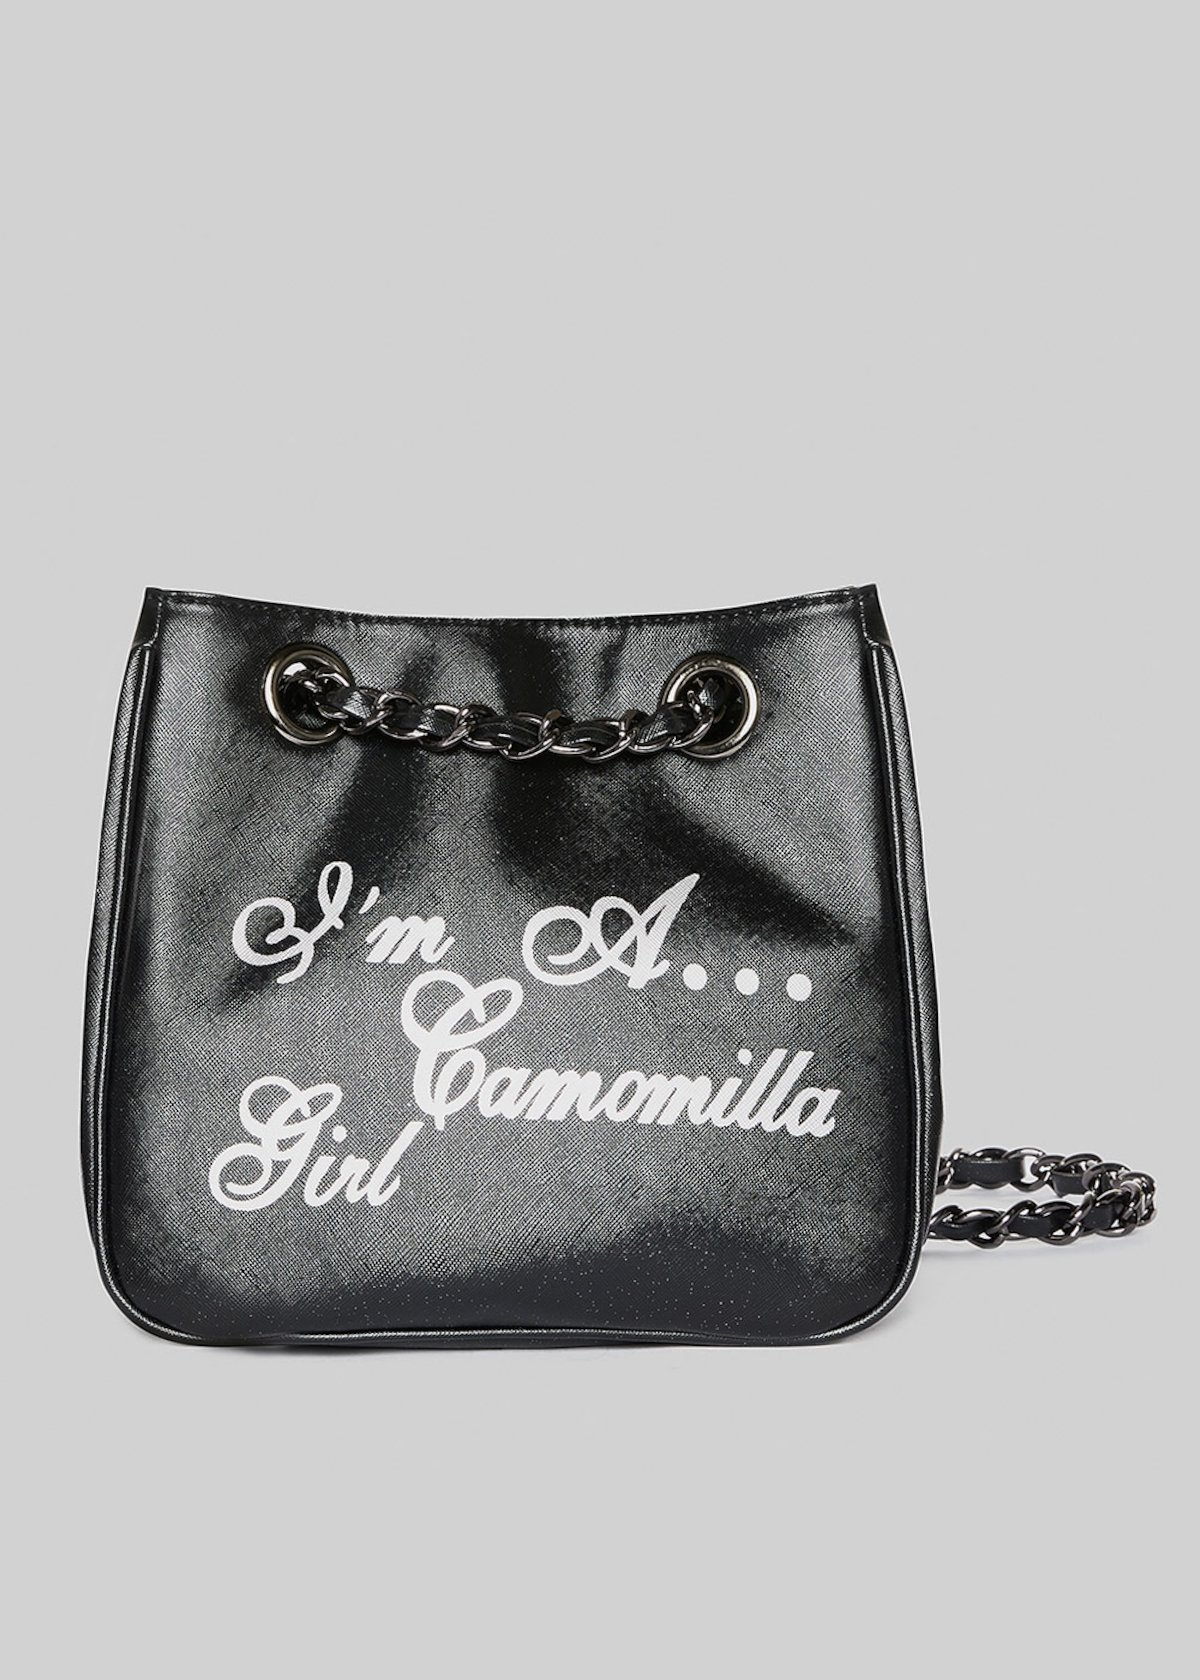 Mini-shopping bag Microsaff in ecopelle con manici a catena - Black